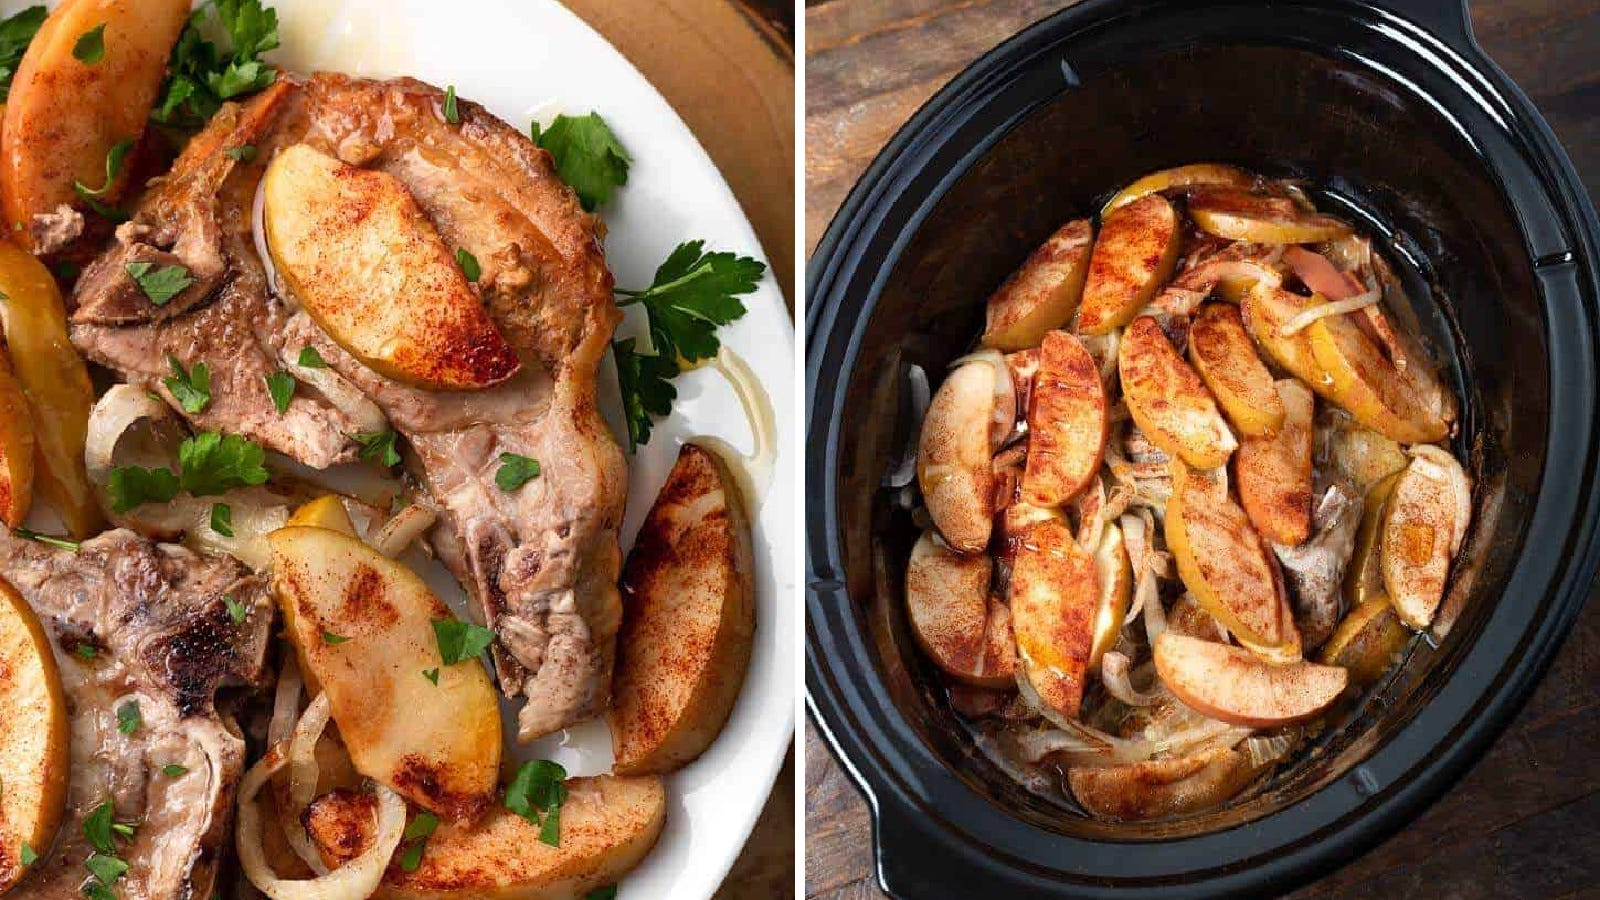 Two images of pork chops with apples and onions.